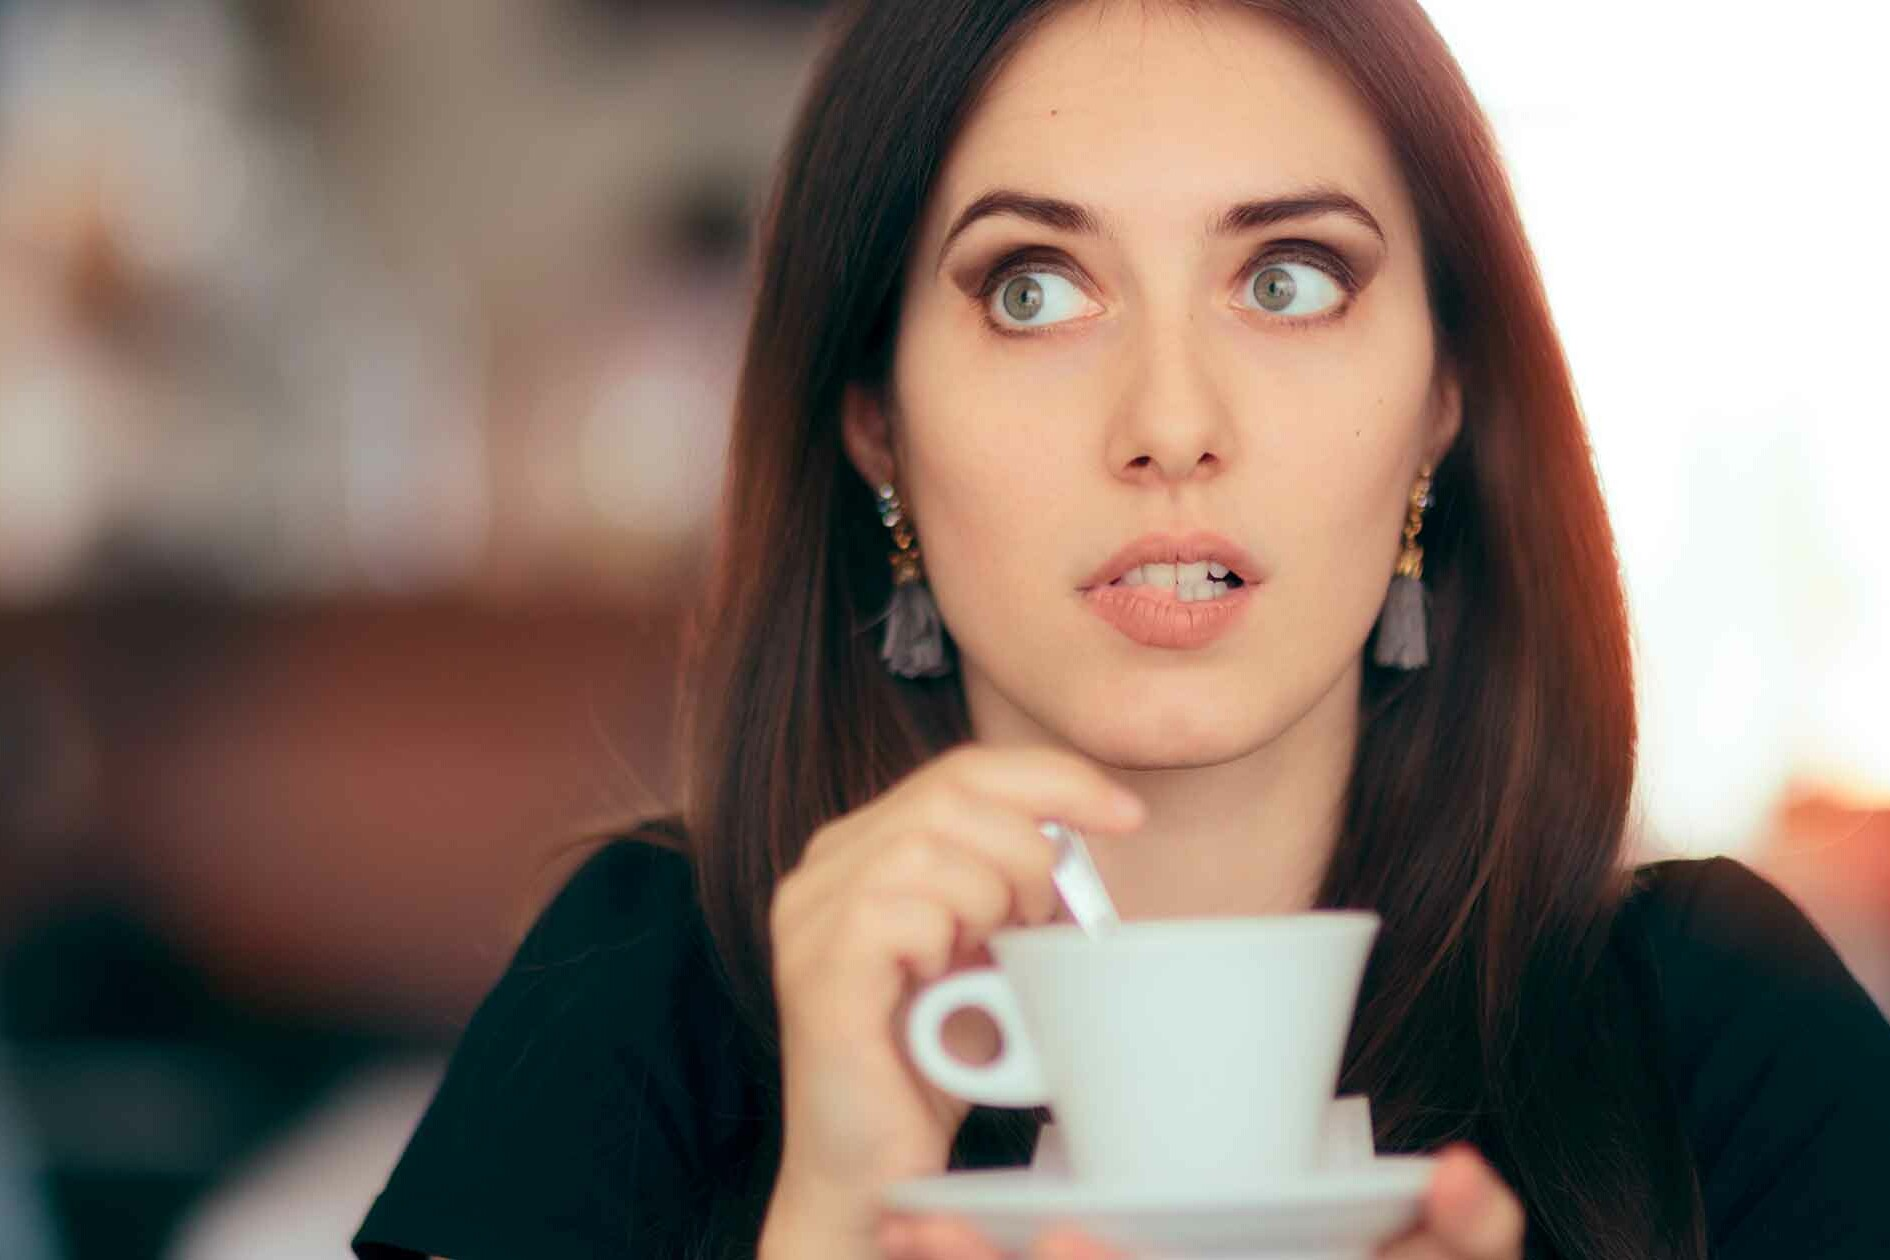 Woman Surprised by Ghost Over Coffee - Haunting